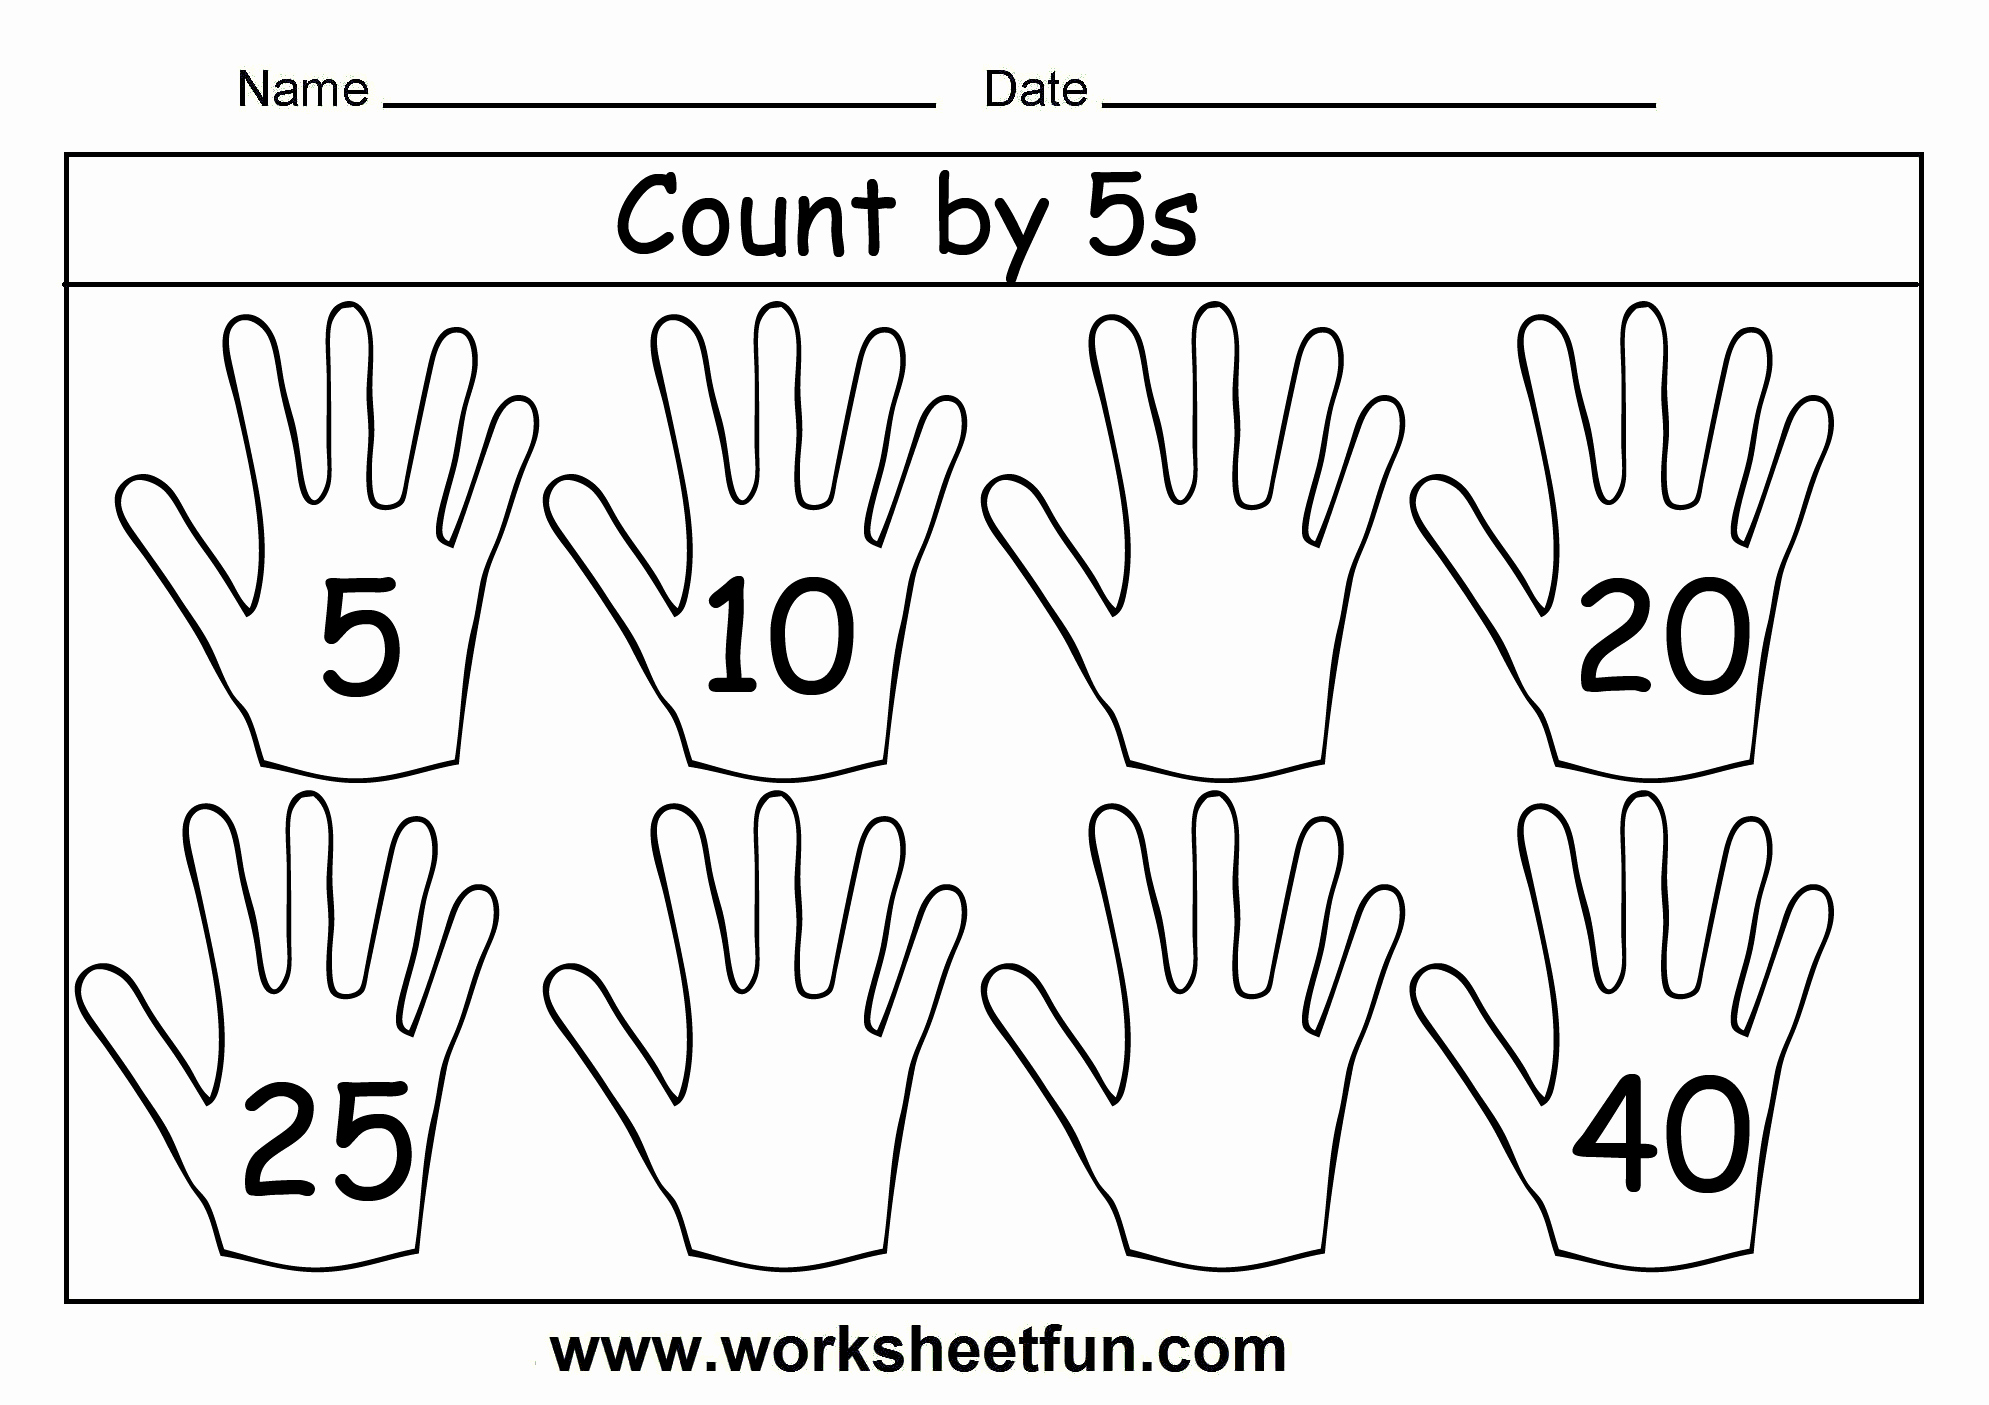 Counting by 5s Worksheet Best Of Count by 5s – 3 Worksheets Free Printable Worksheets